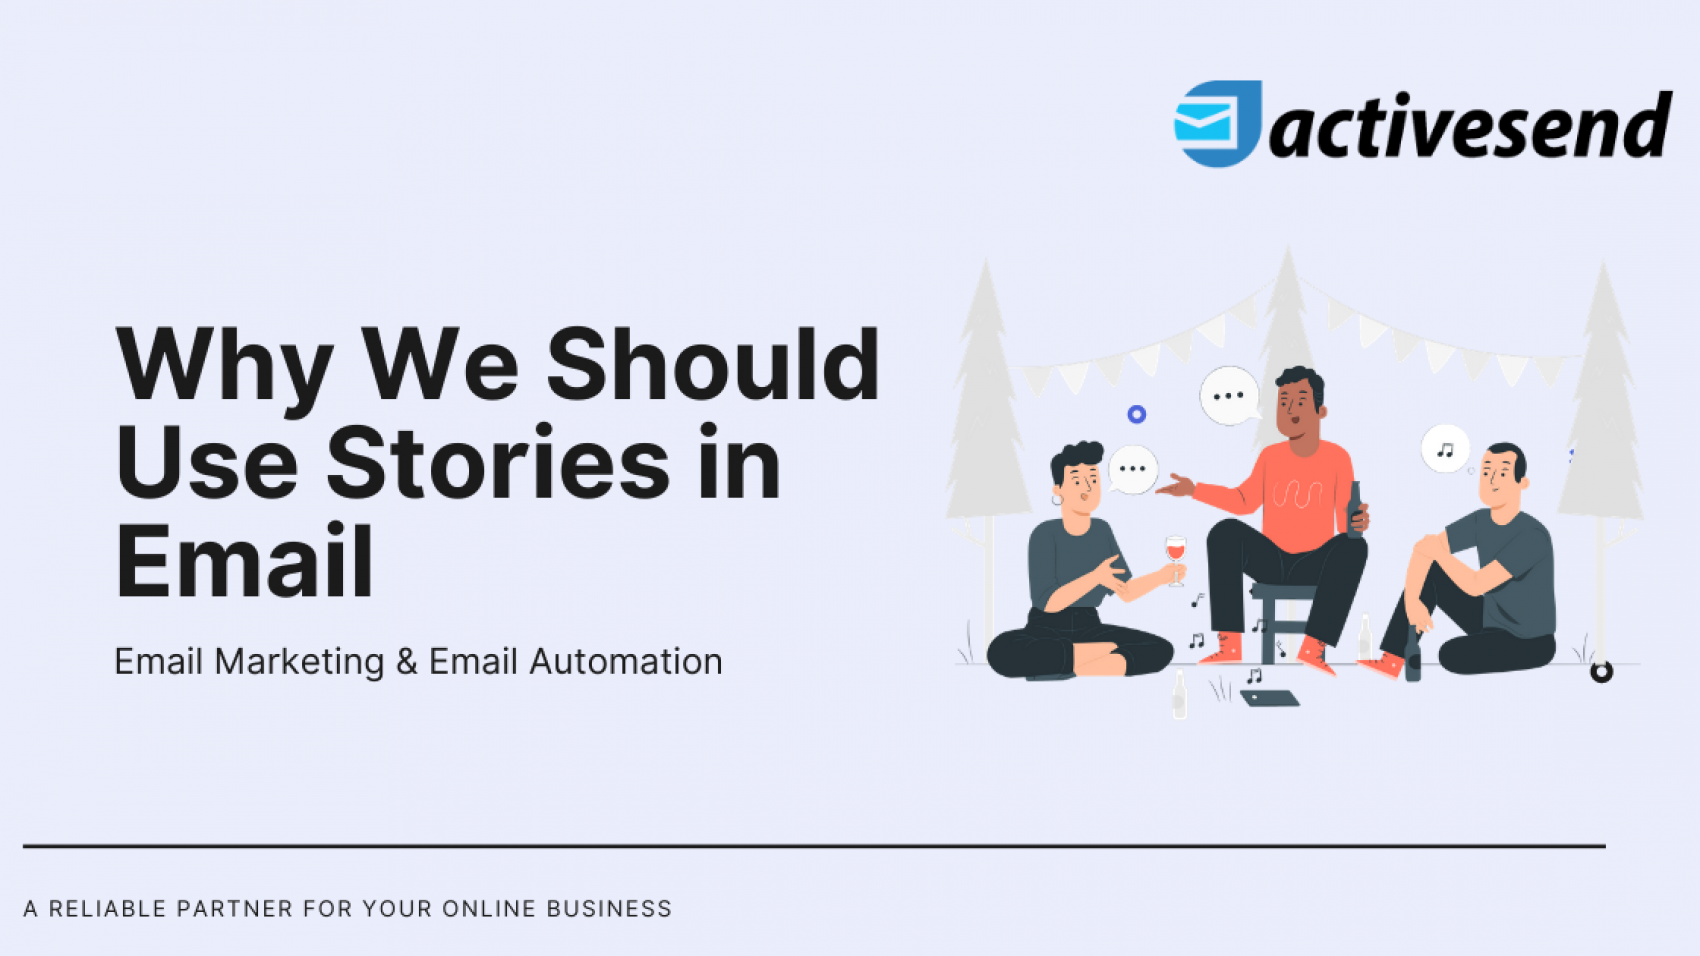 Why We Should Use Stories in Email